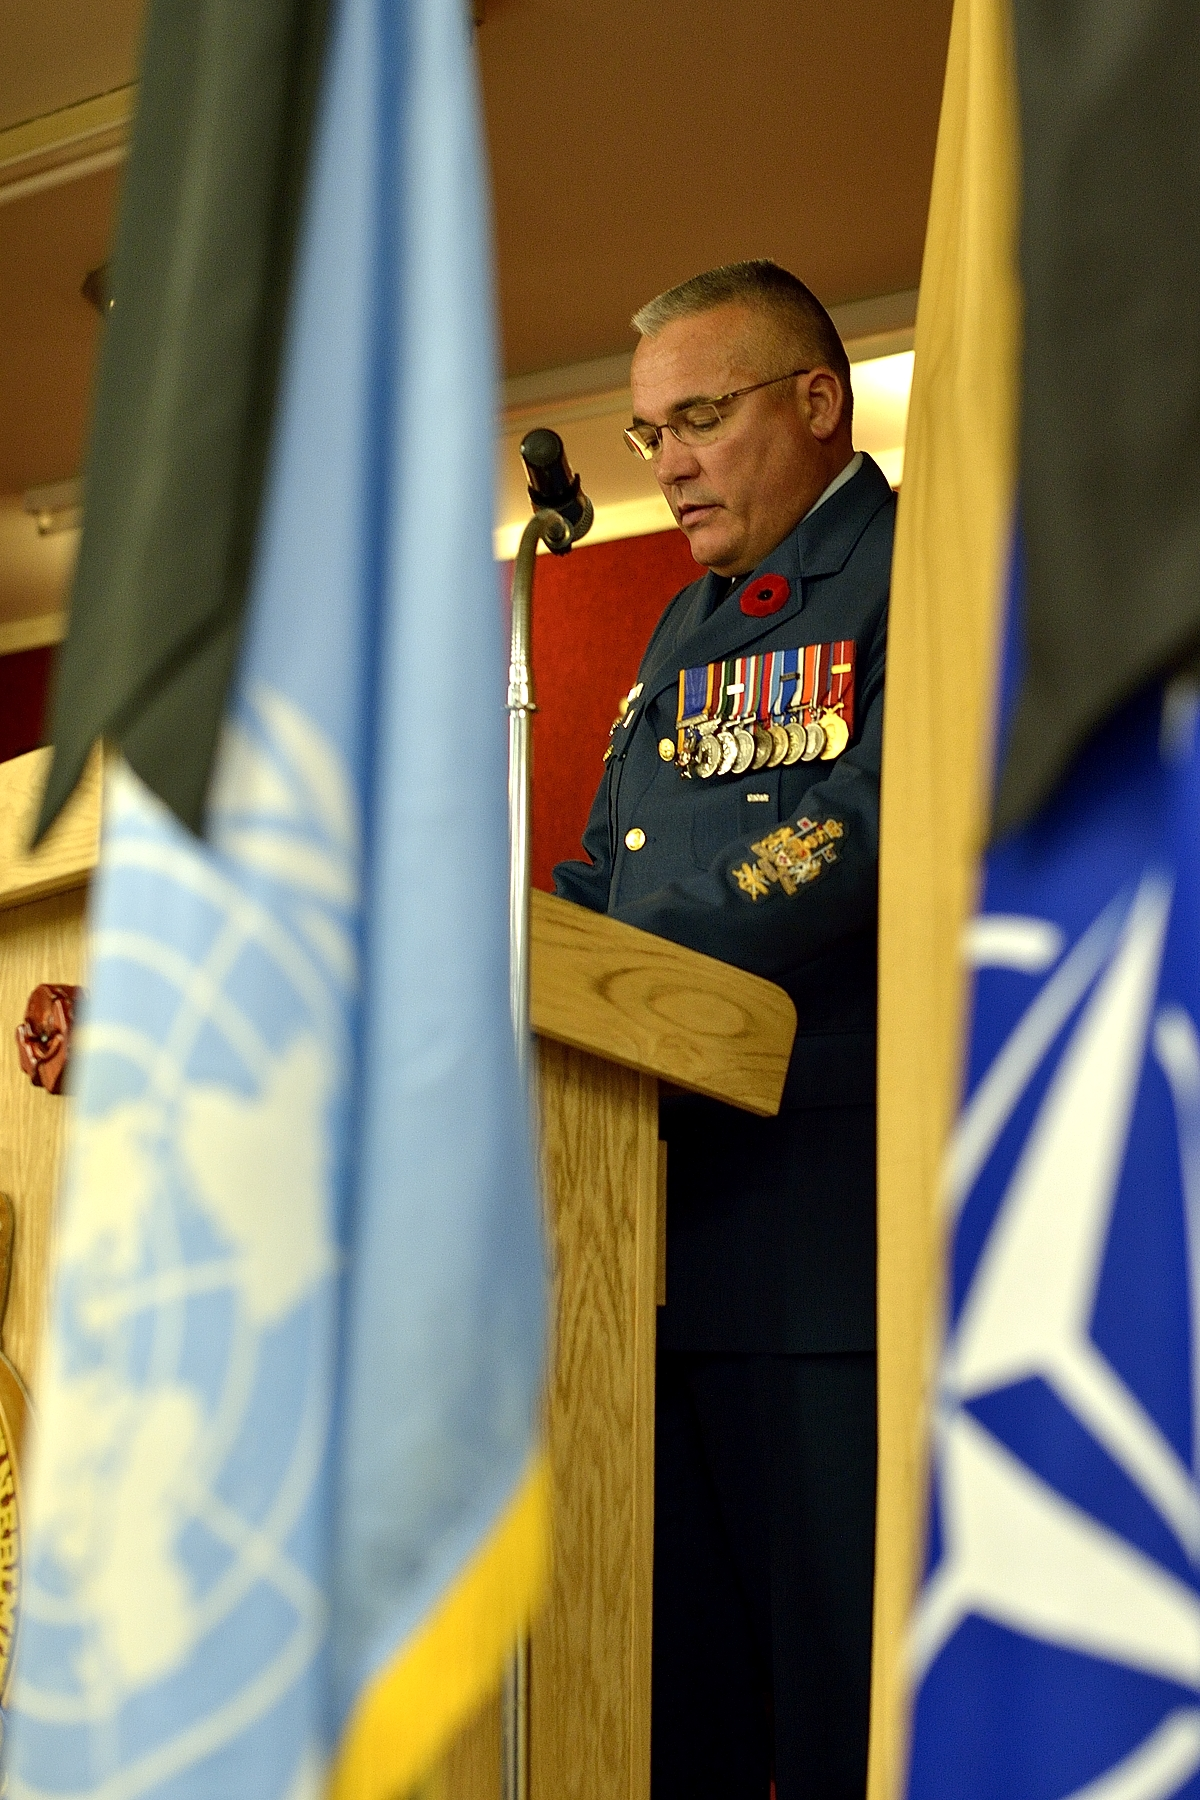 Chief Warrant Officer Pierrot Jetté, 14 Wing Greenwood Chief Warrant Officer, delivers an address during the Remembrance Day ceremony at the Royal Canadian Legion in Kingston, Nova Scotia, on November 11, 2014.